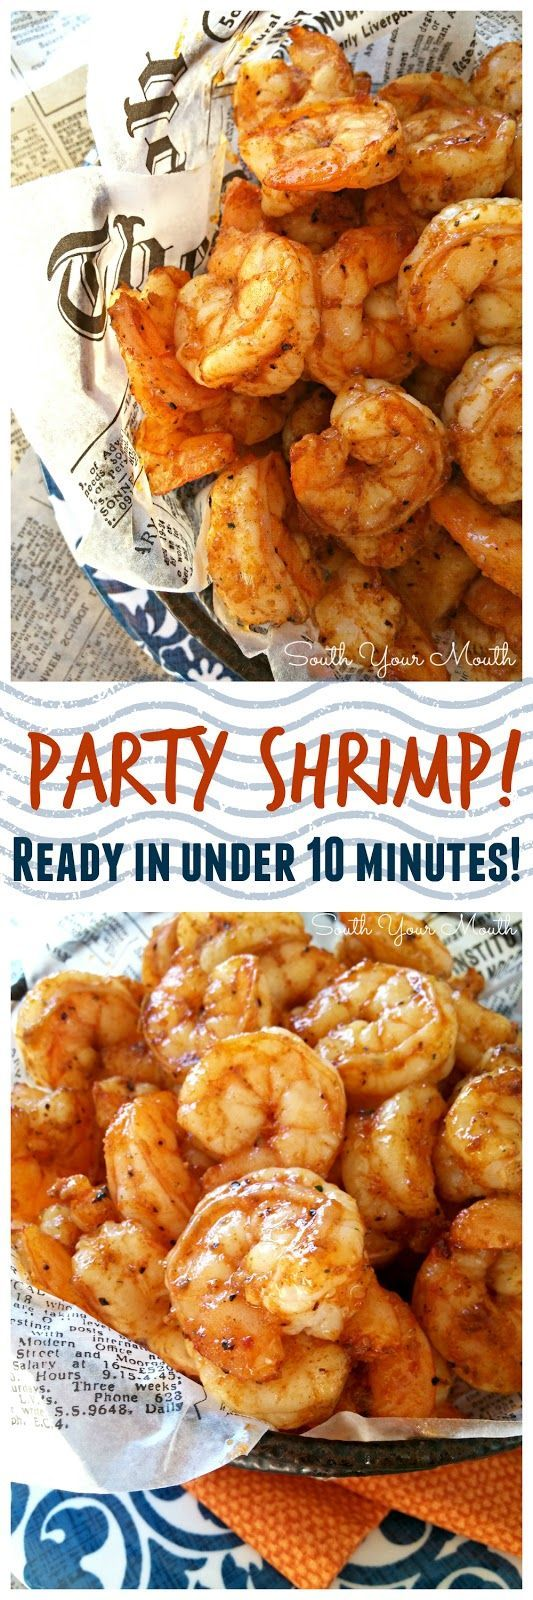 Easy shrimp recipes in the oven